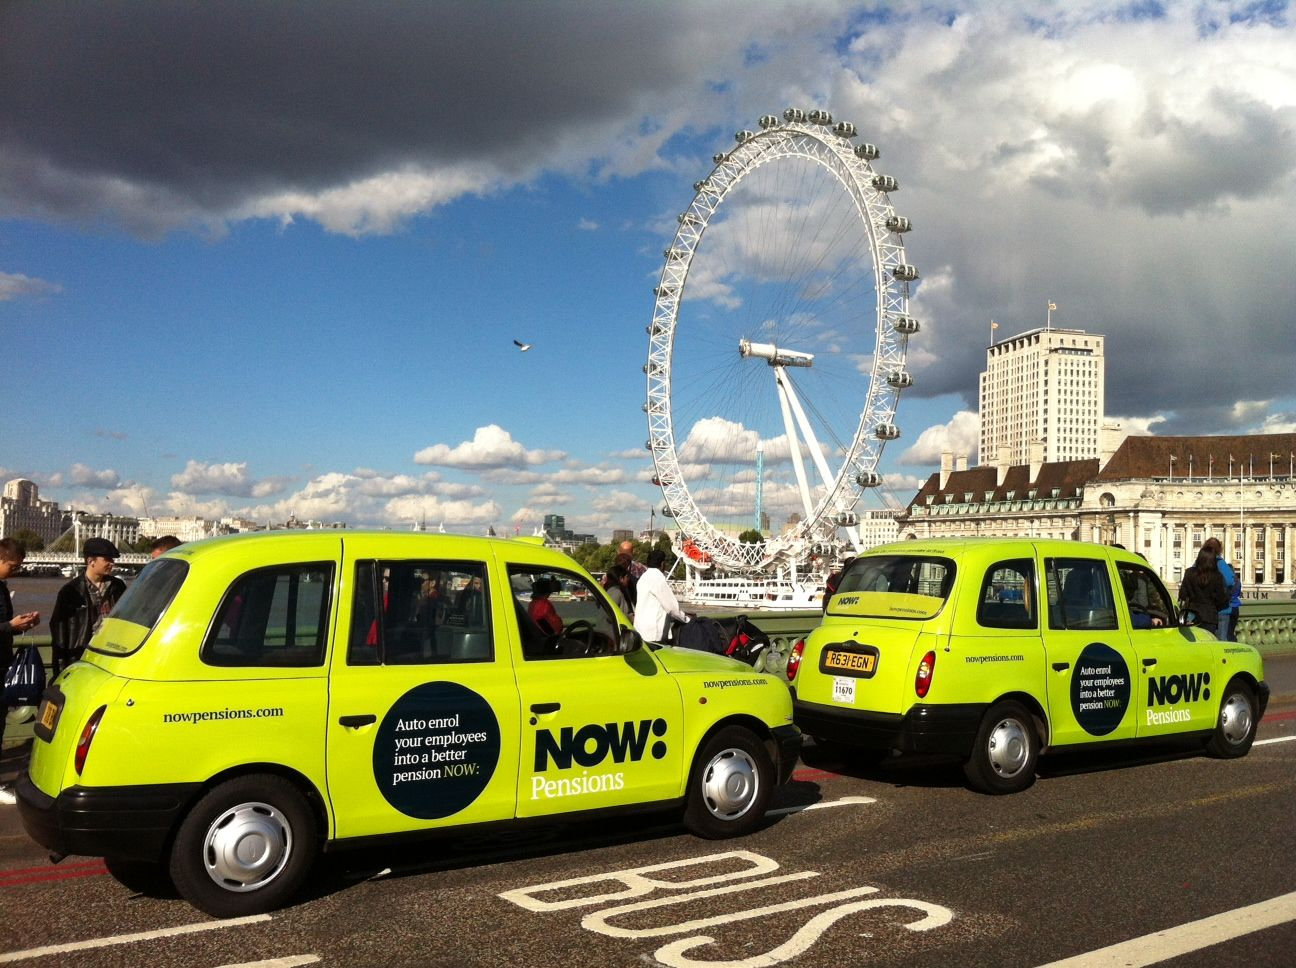 Now Pensions taxi branding